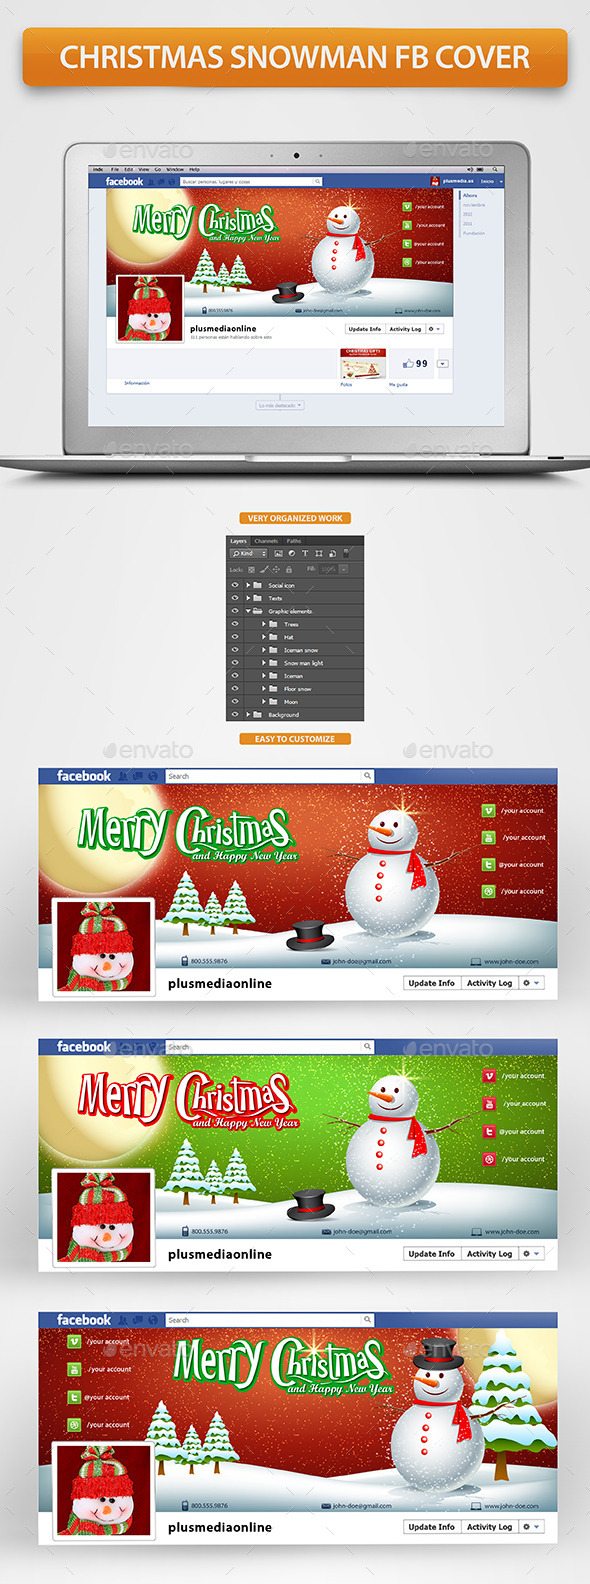 Christmas Snowman Timeline Cover - Facebook Timeline Covers Social Media